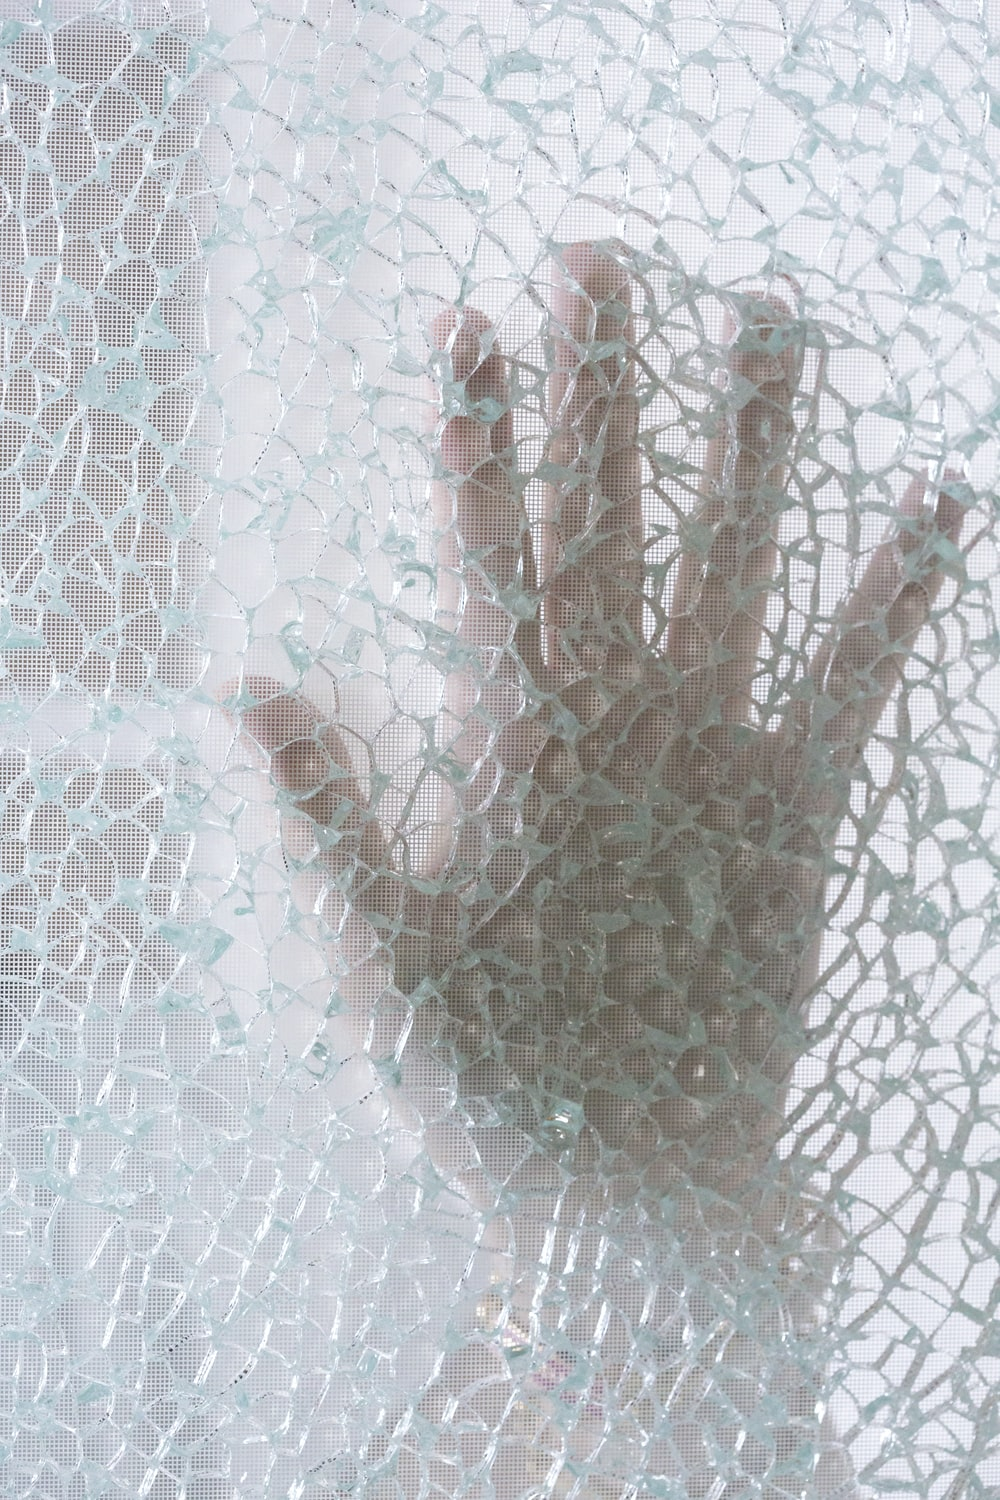 persons hand on glass